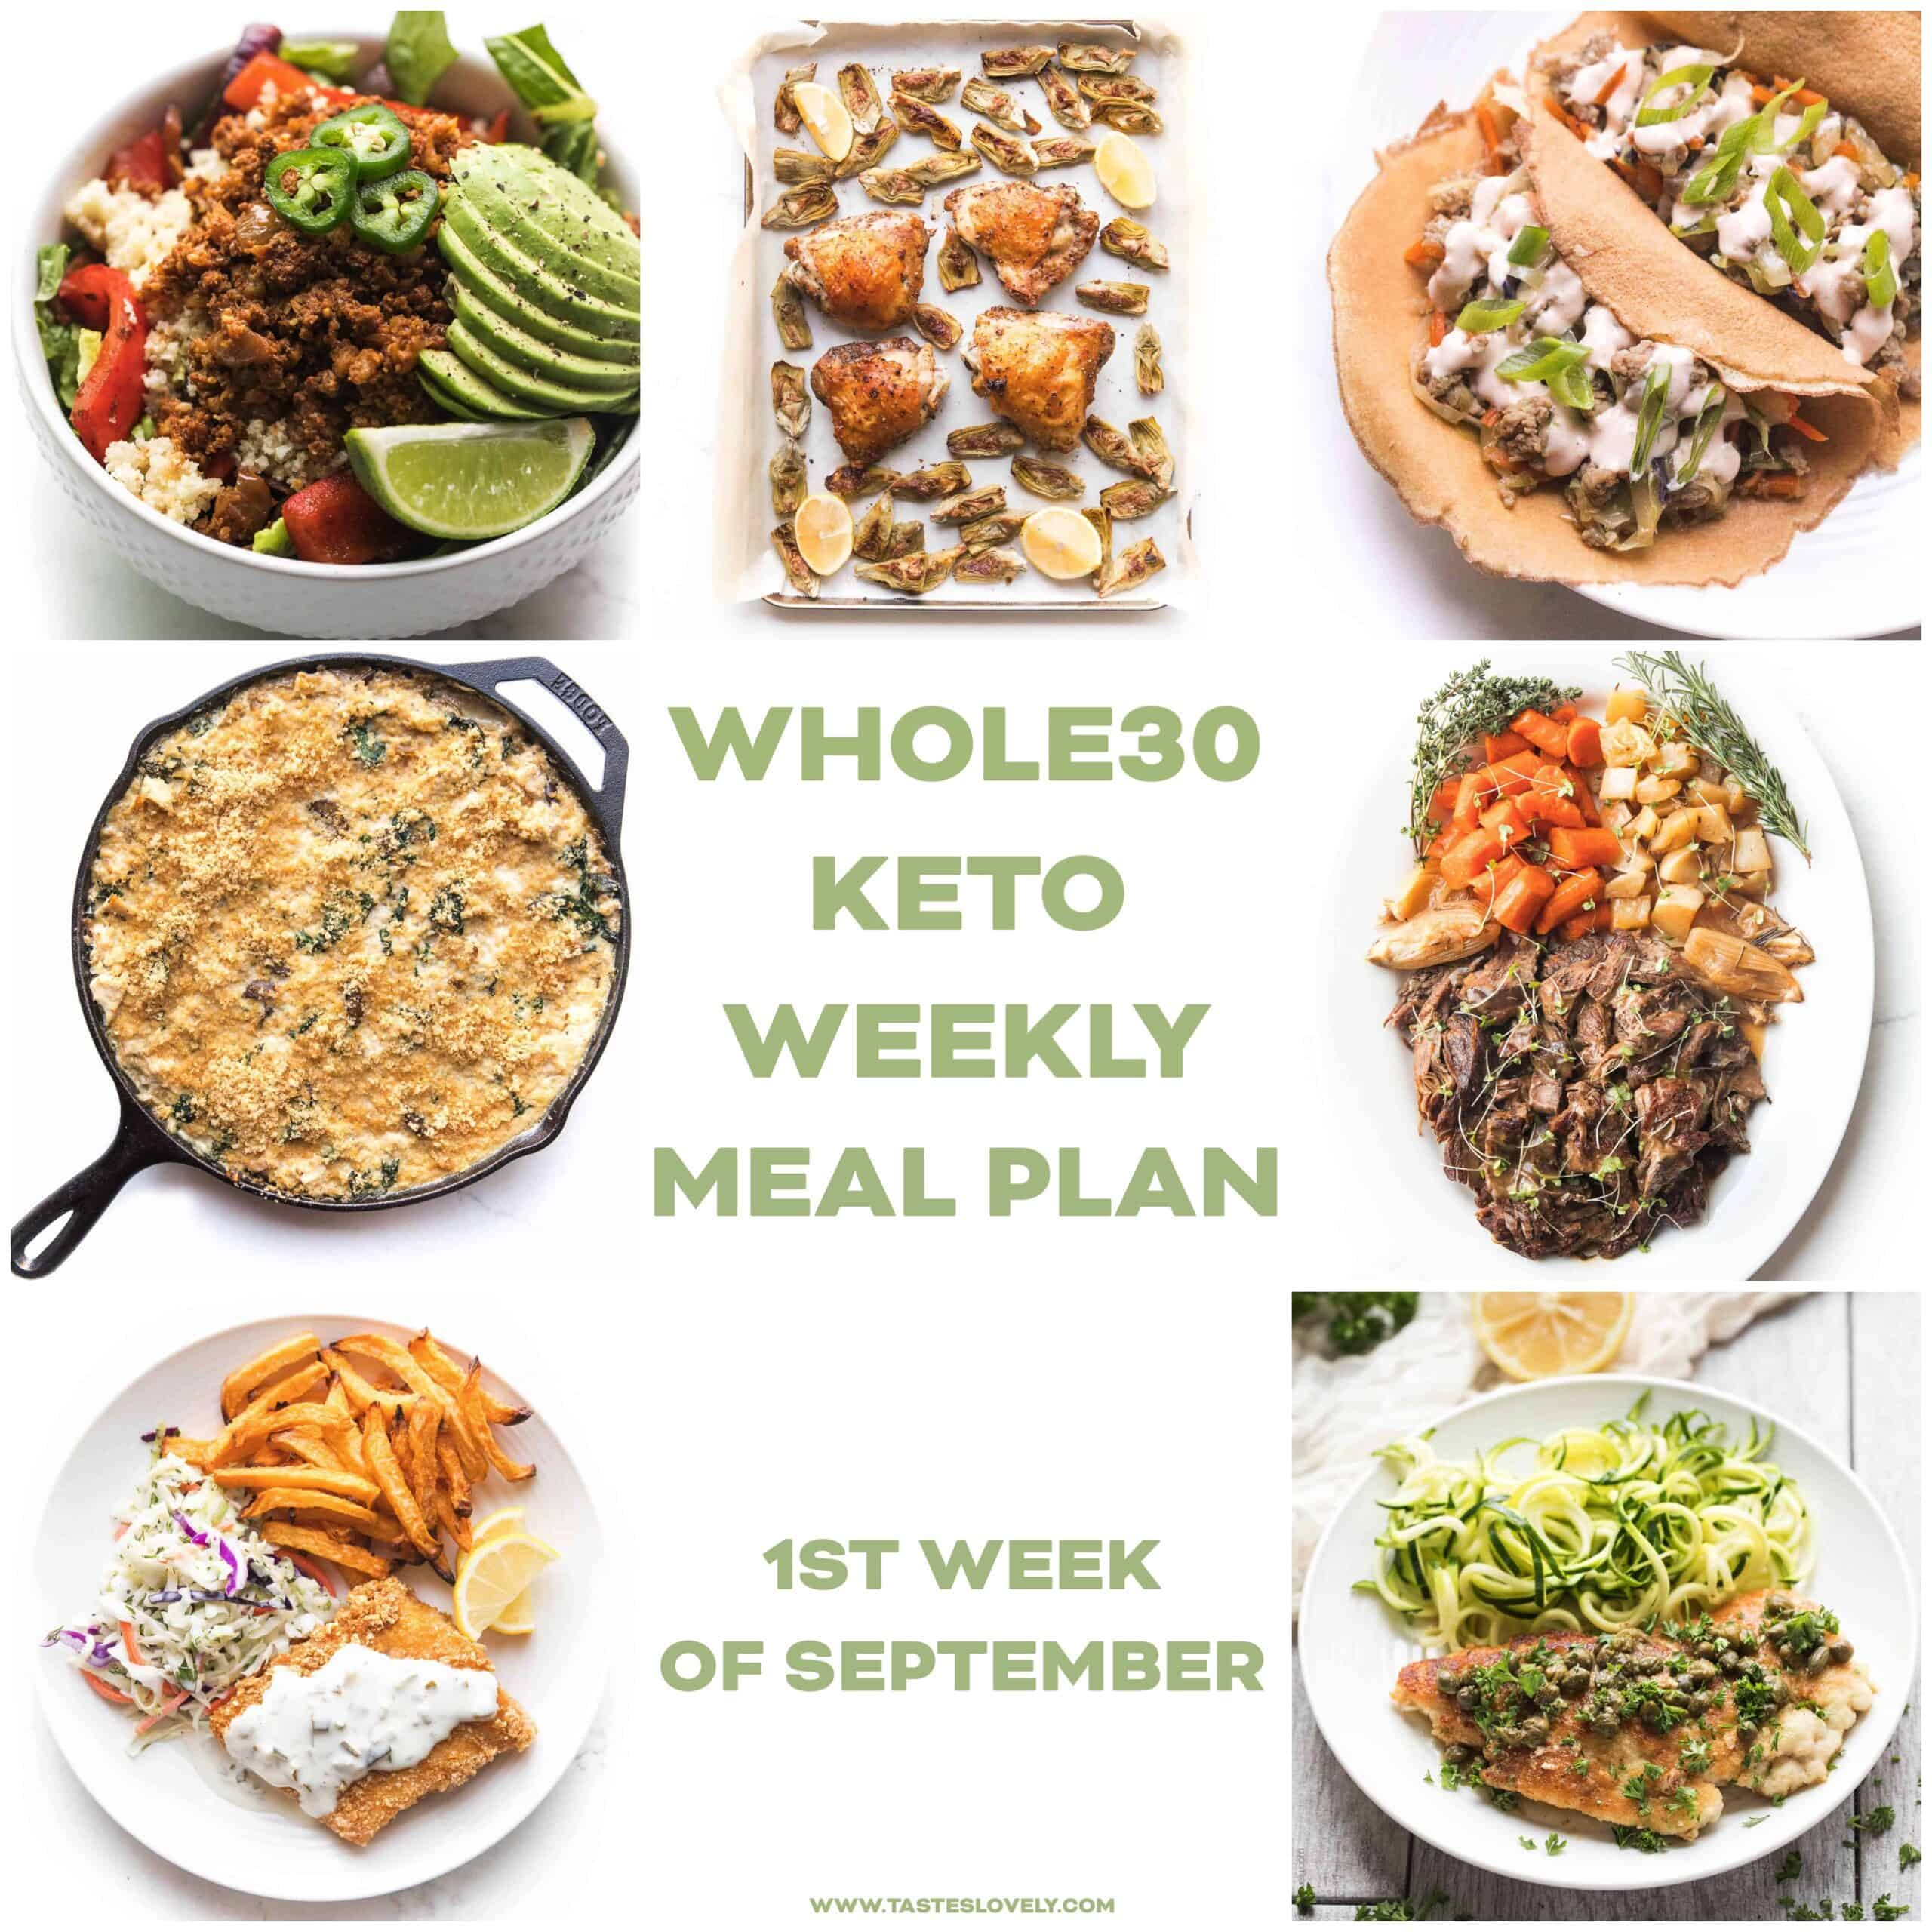 Keto One Meal A Day Plan